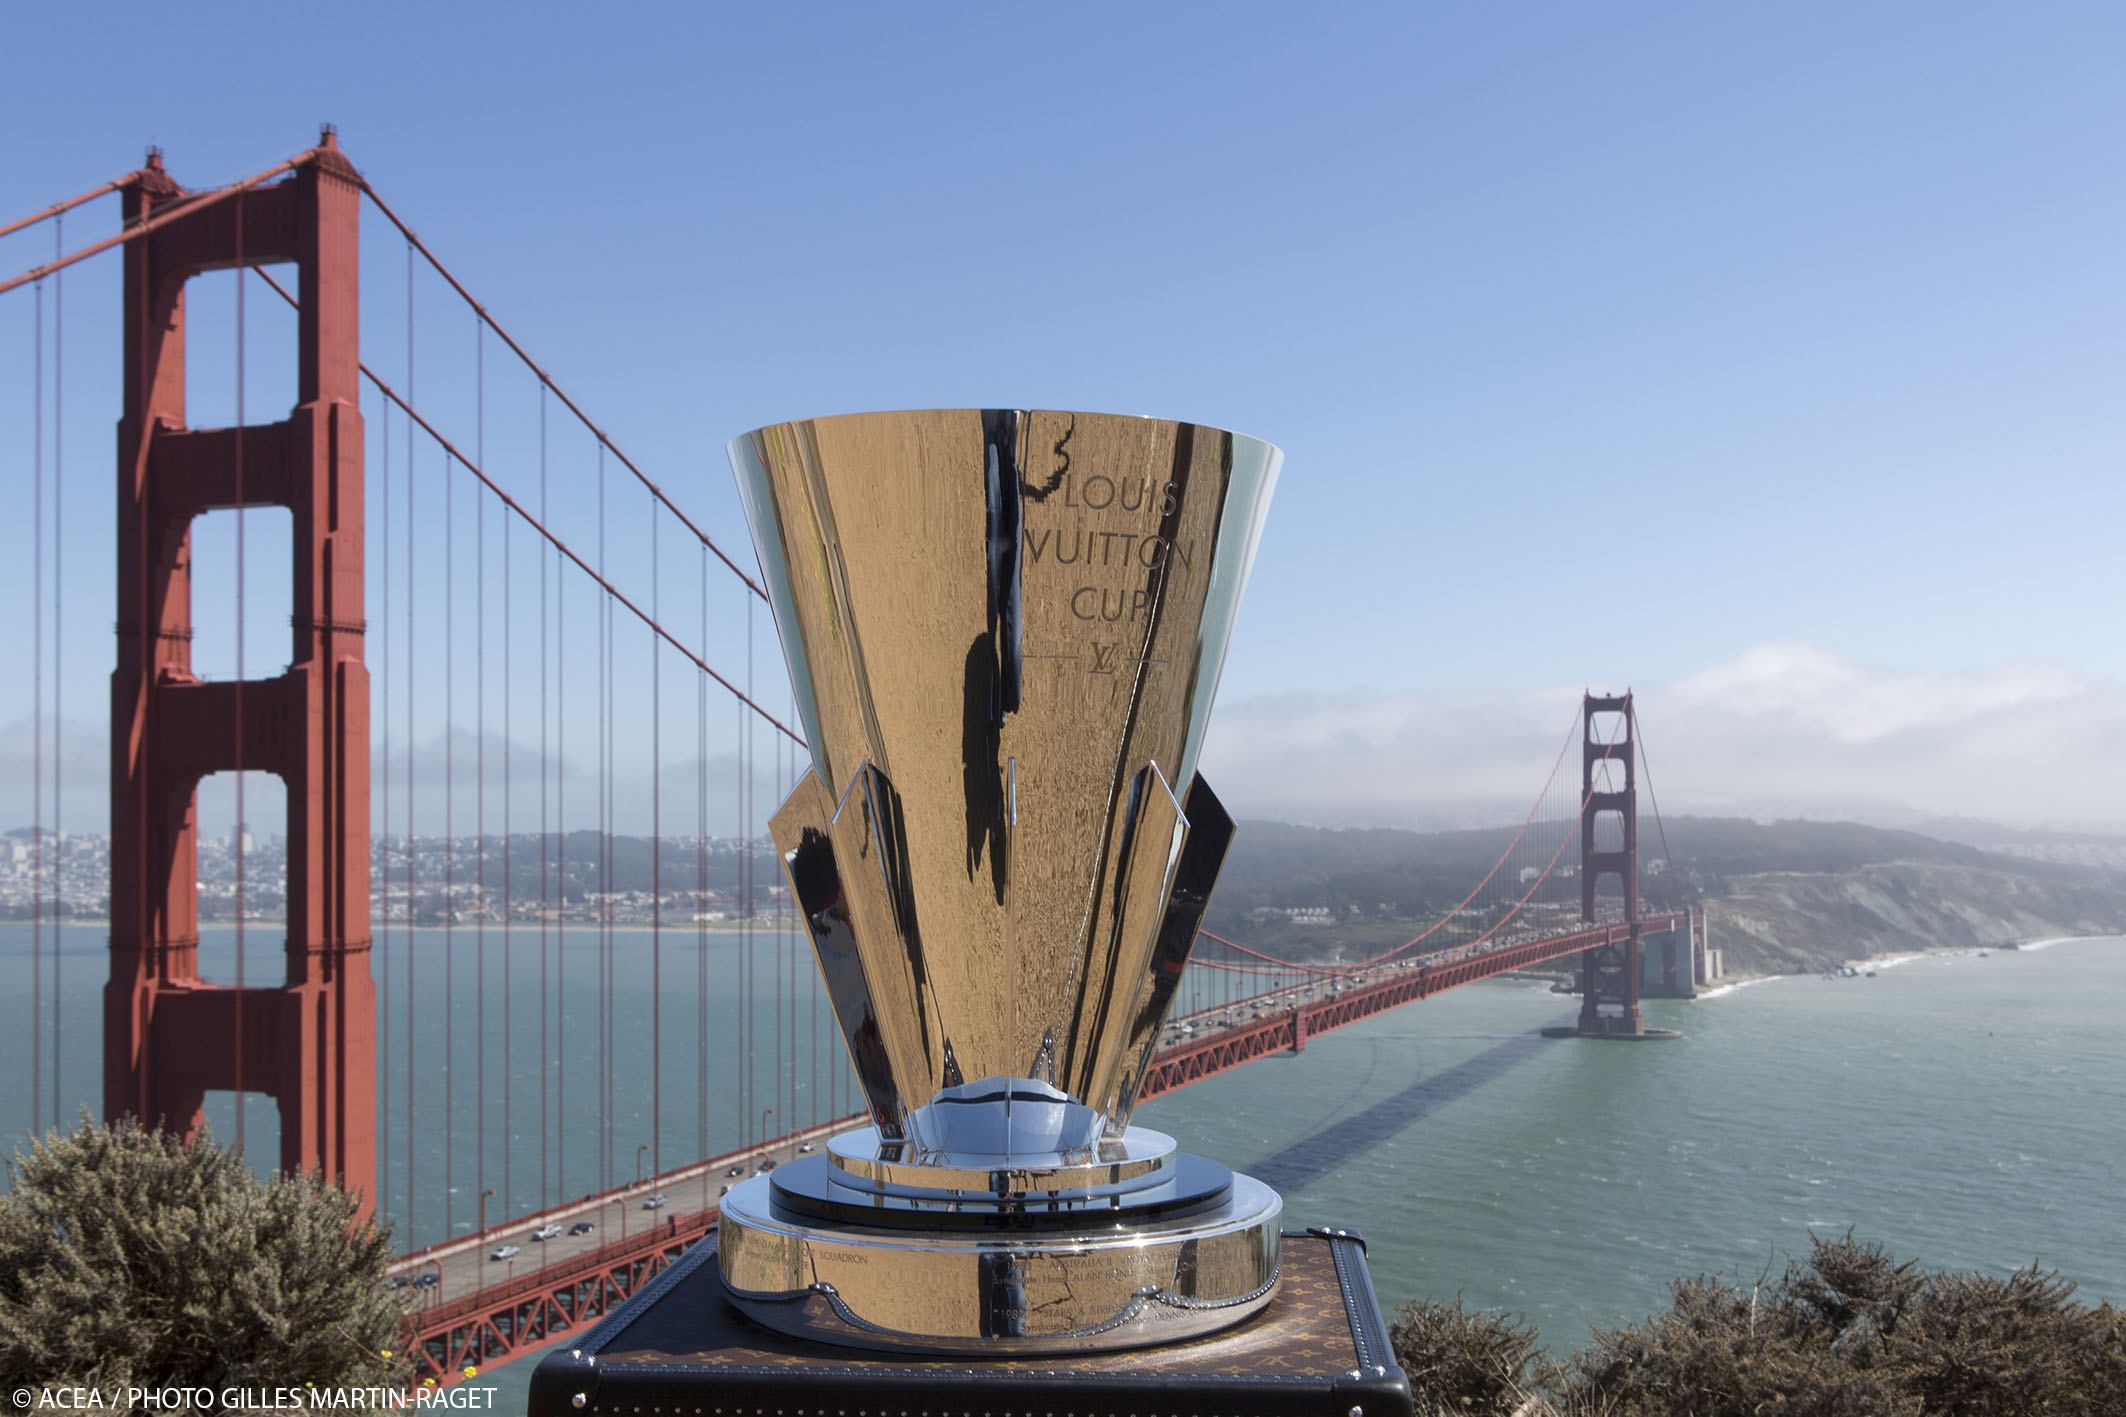 The-Louis-Vuitton-Cup-contested-since-19